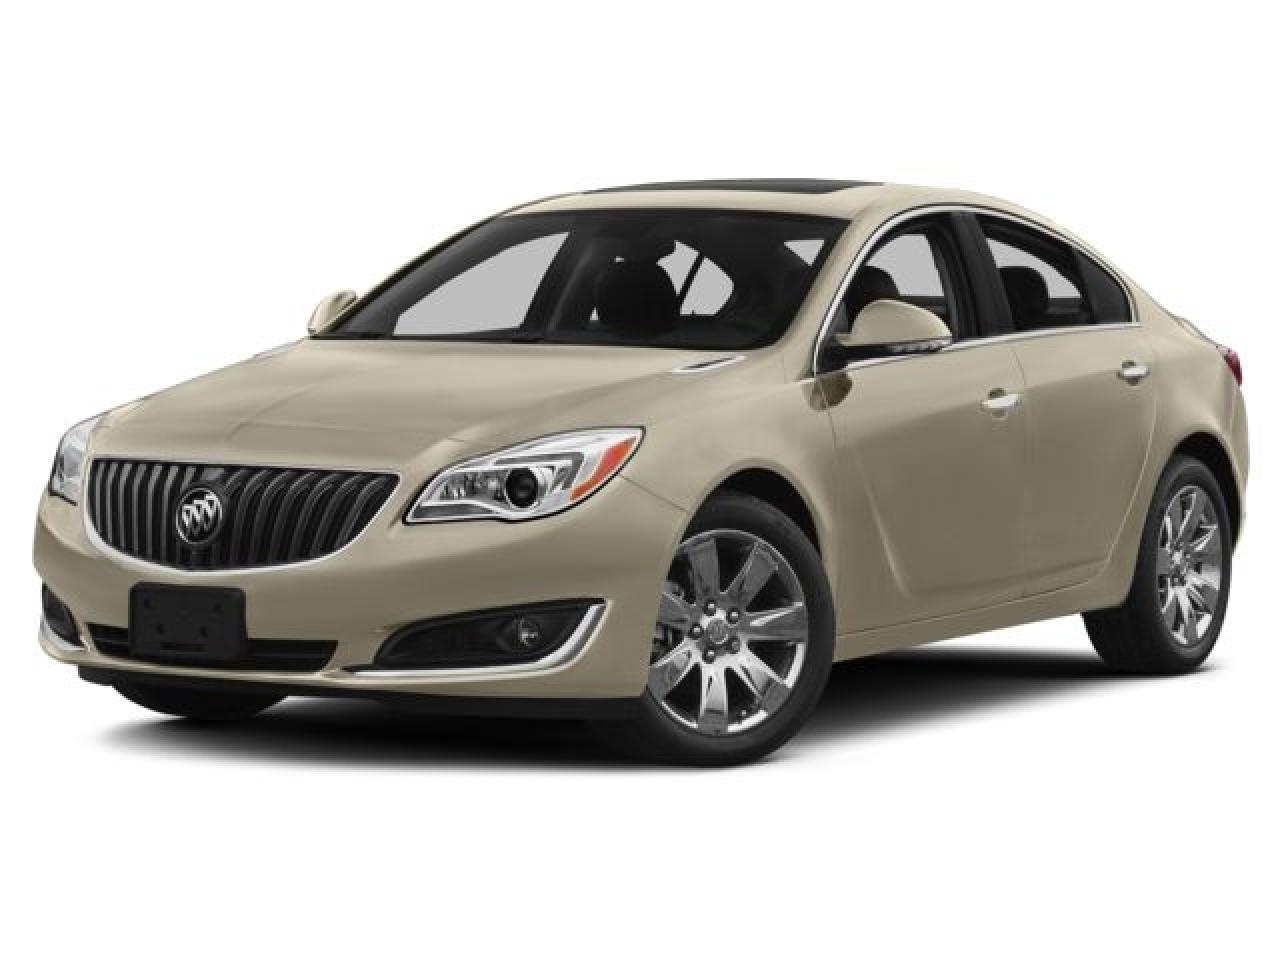 2015 buick regal information and photos zombiedrive. Black Bedroom Furniture Sets. Home Design Ideas